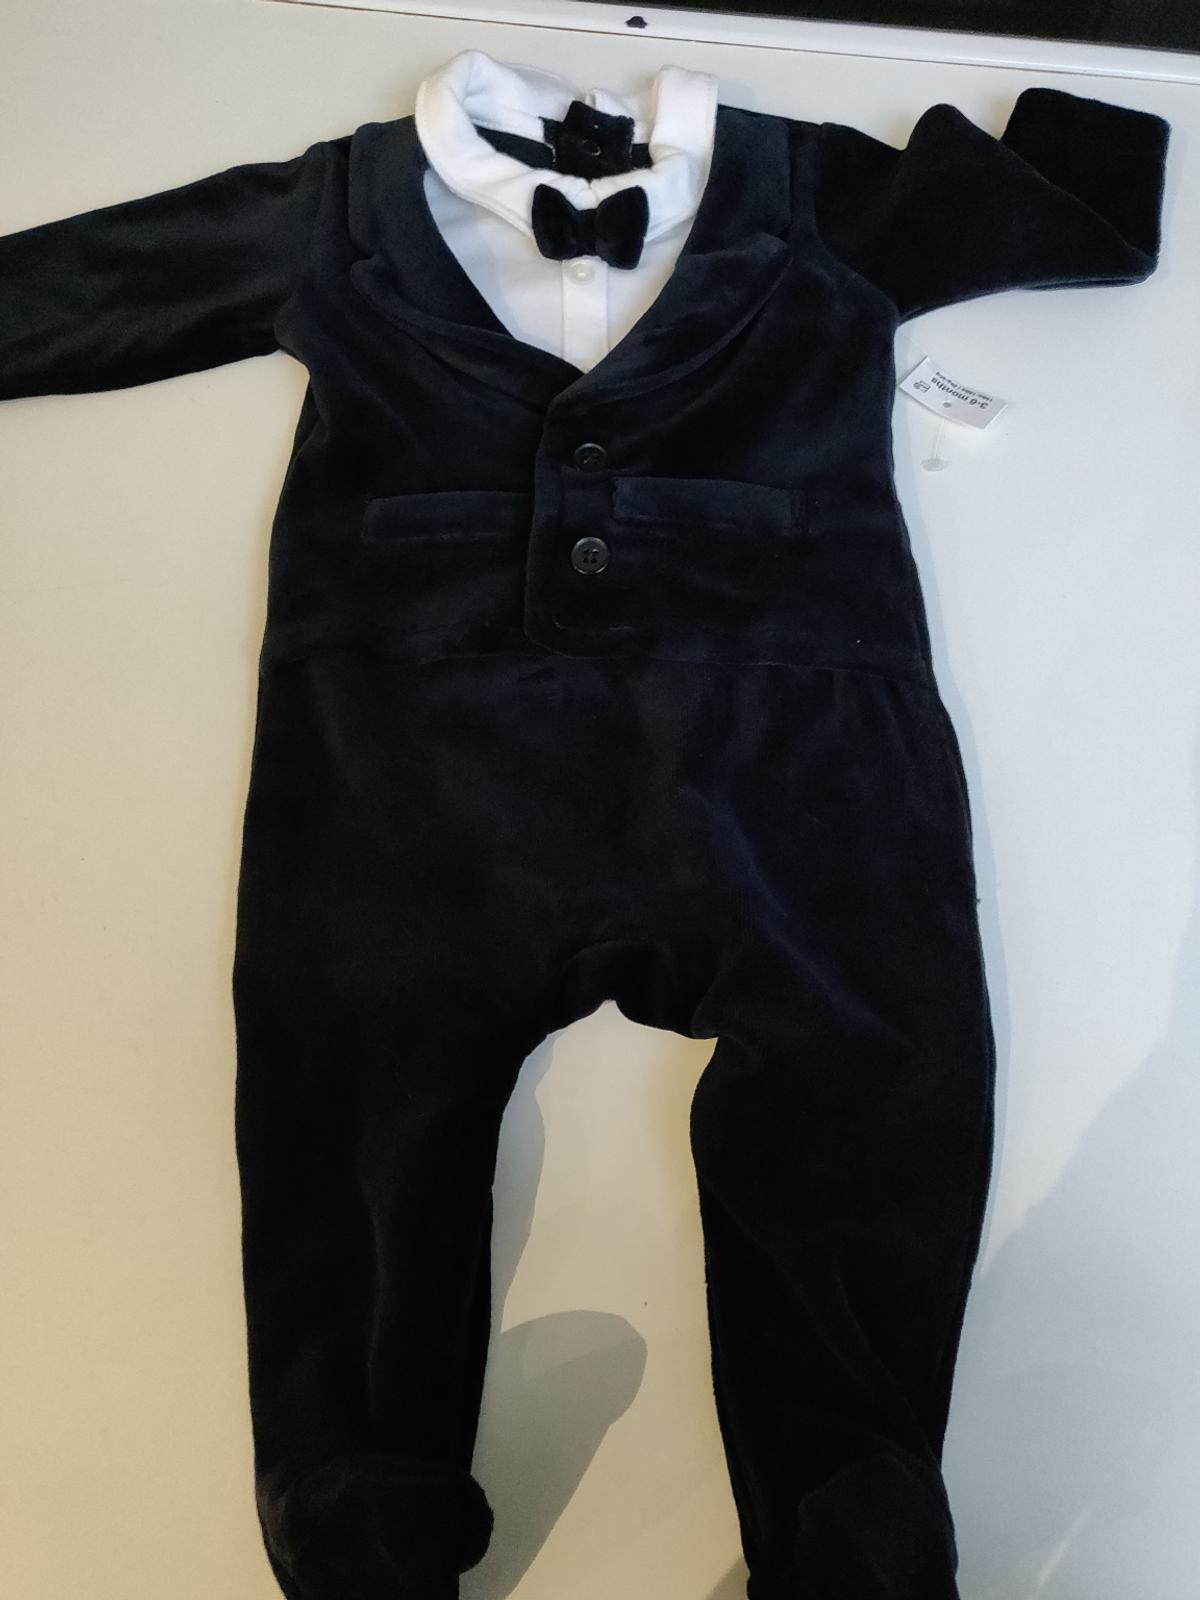 3-6 months, brand new with label. Baby feet warm velour all in one with attached bowtie